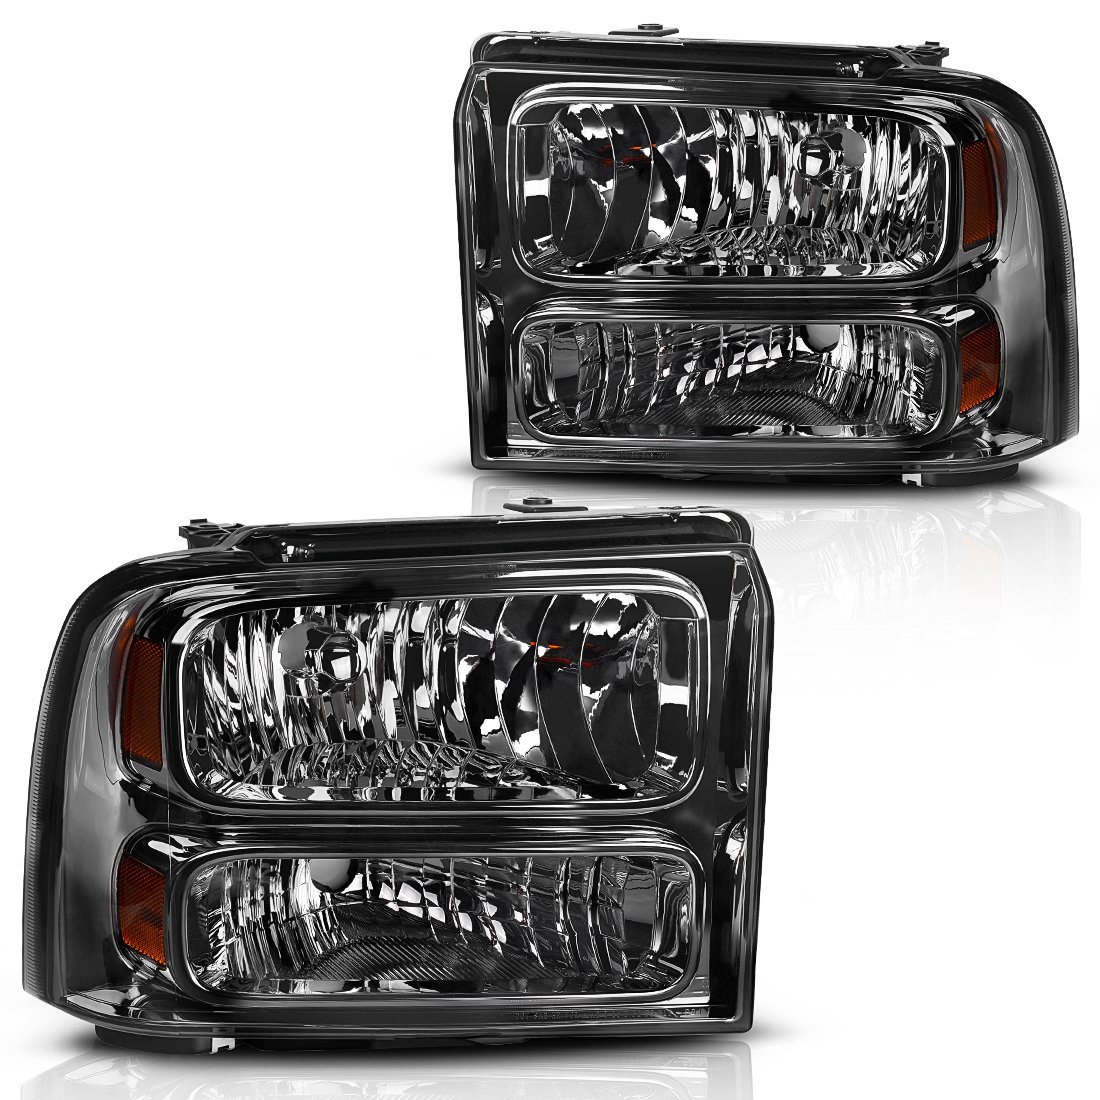 Headlight Assembly For 2005 2006 2007 Ford F250 F350 F450 F550 Super Jeep Wrangler Diagram Duty